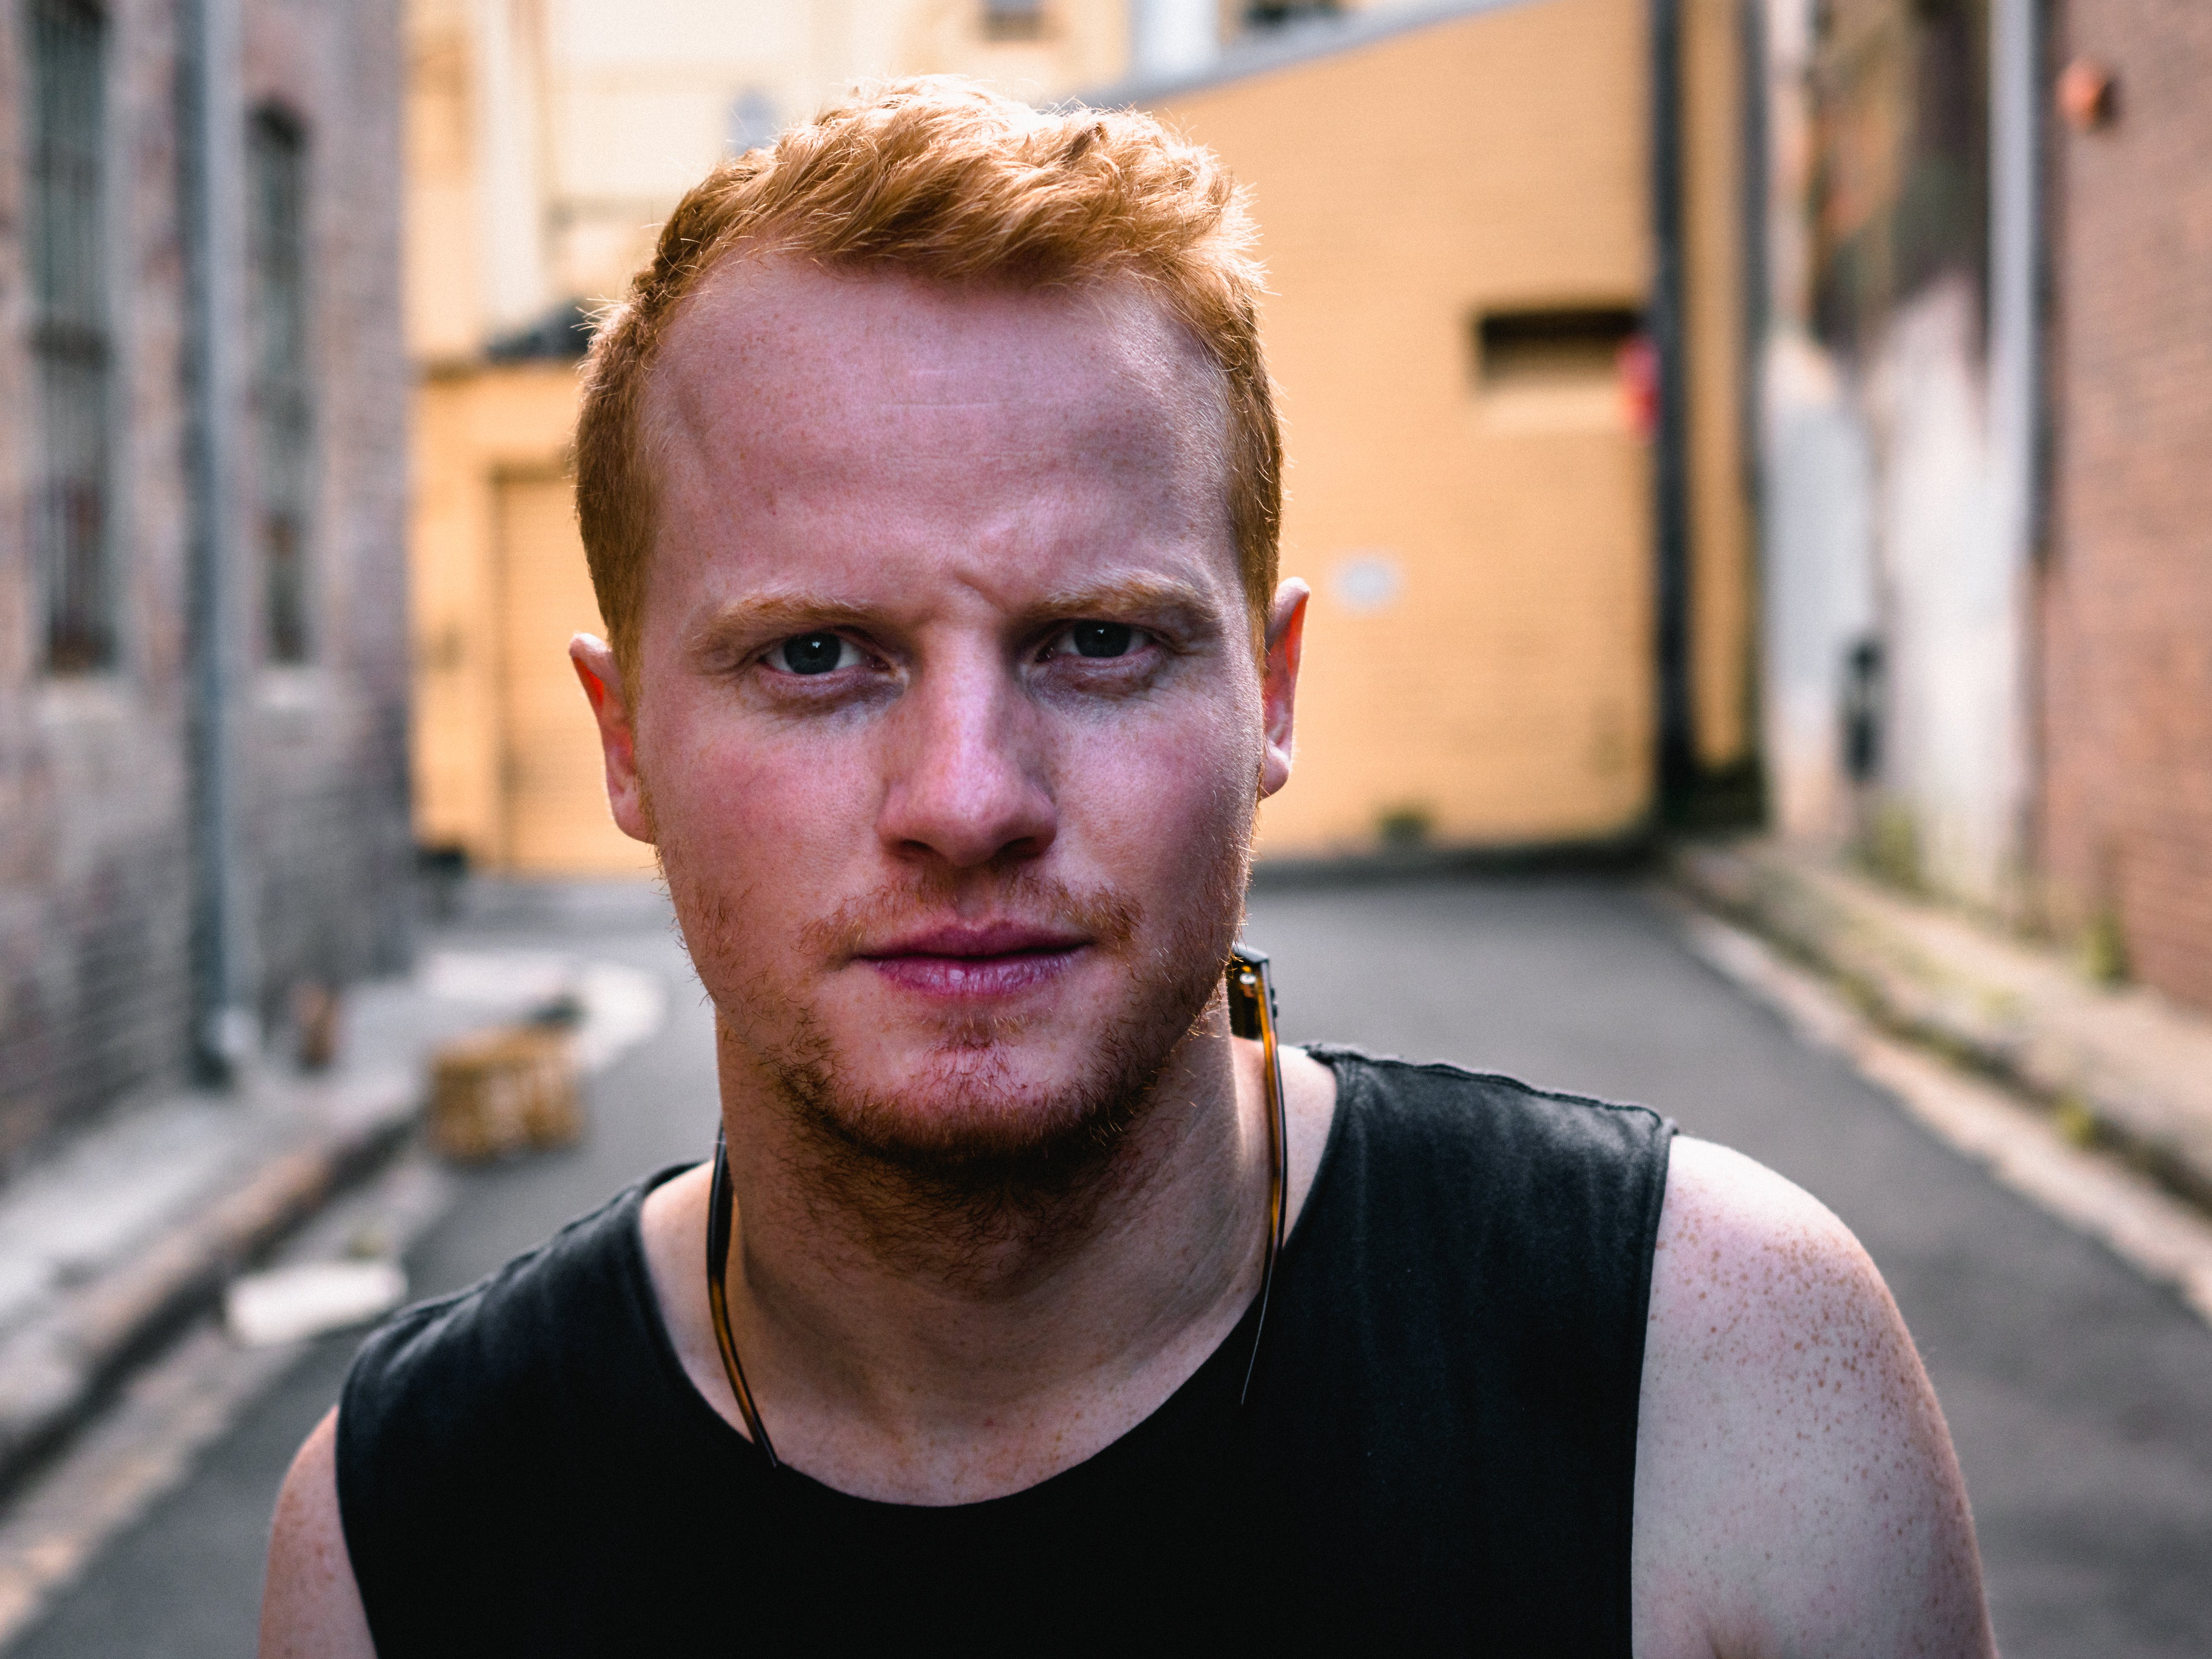 Close-Up Photo of Man Standing in Alley